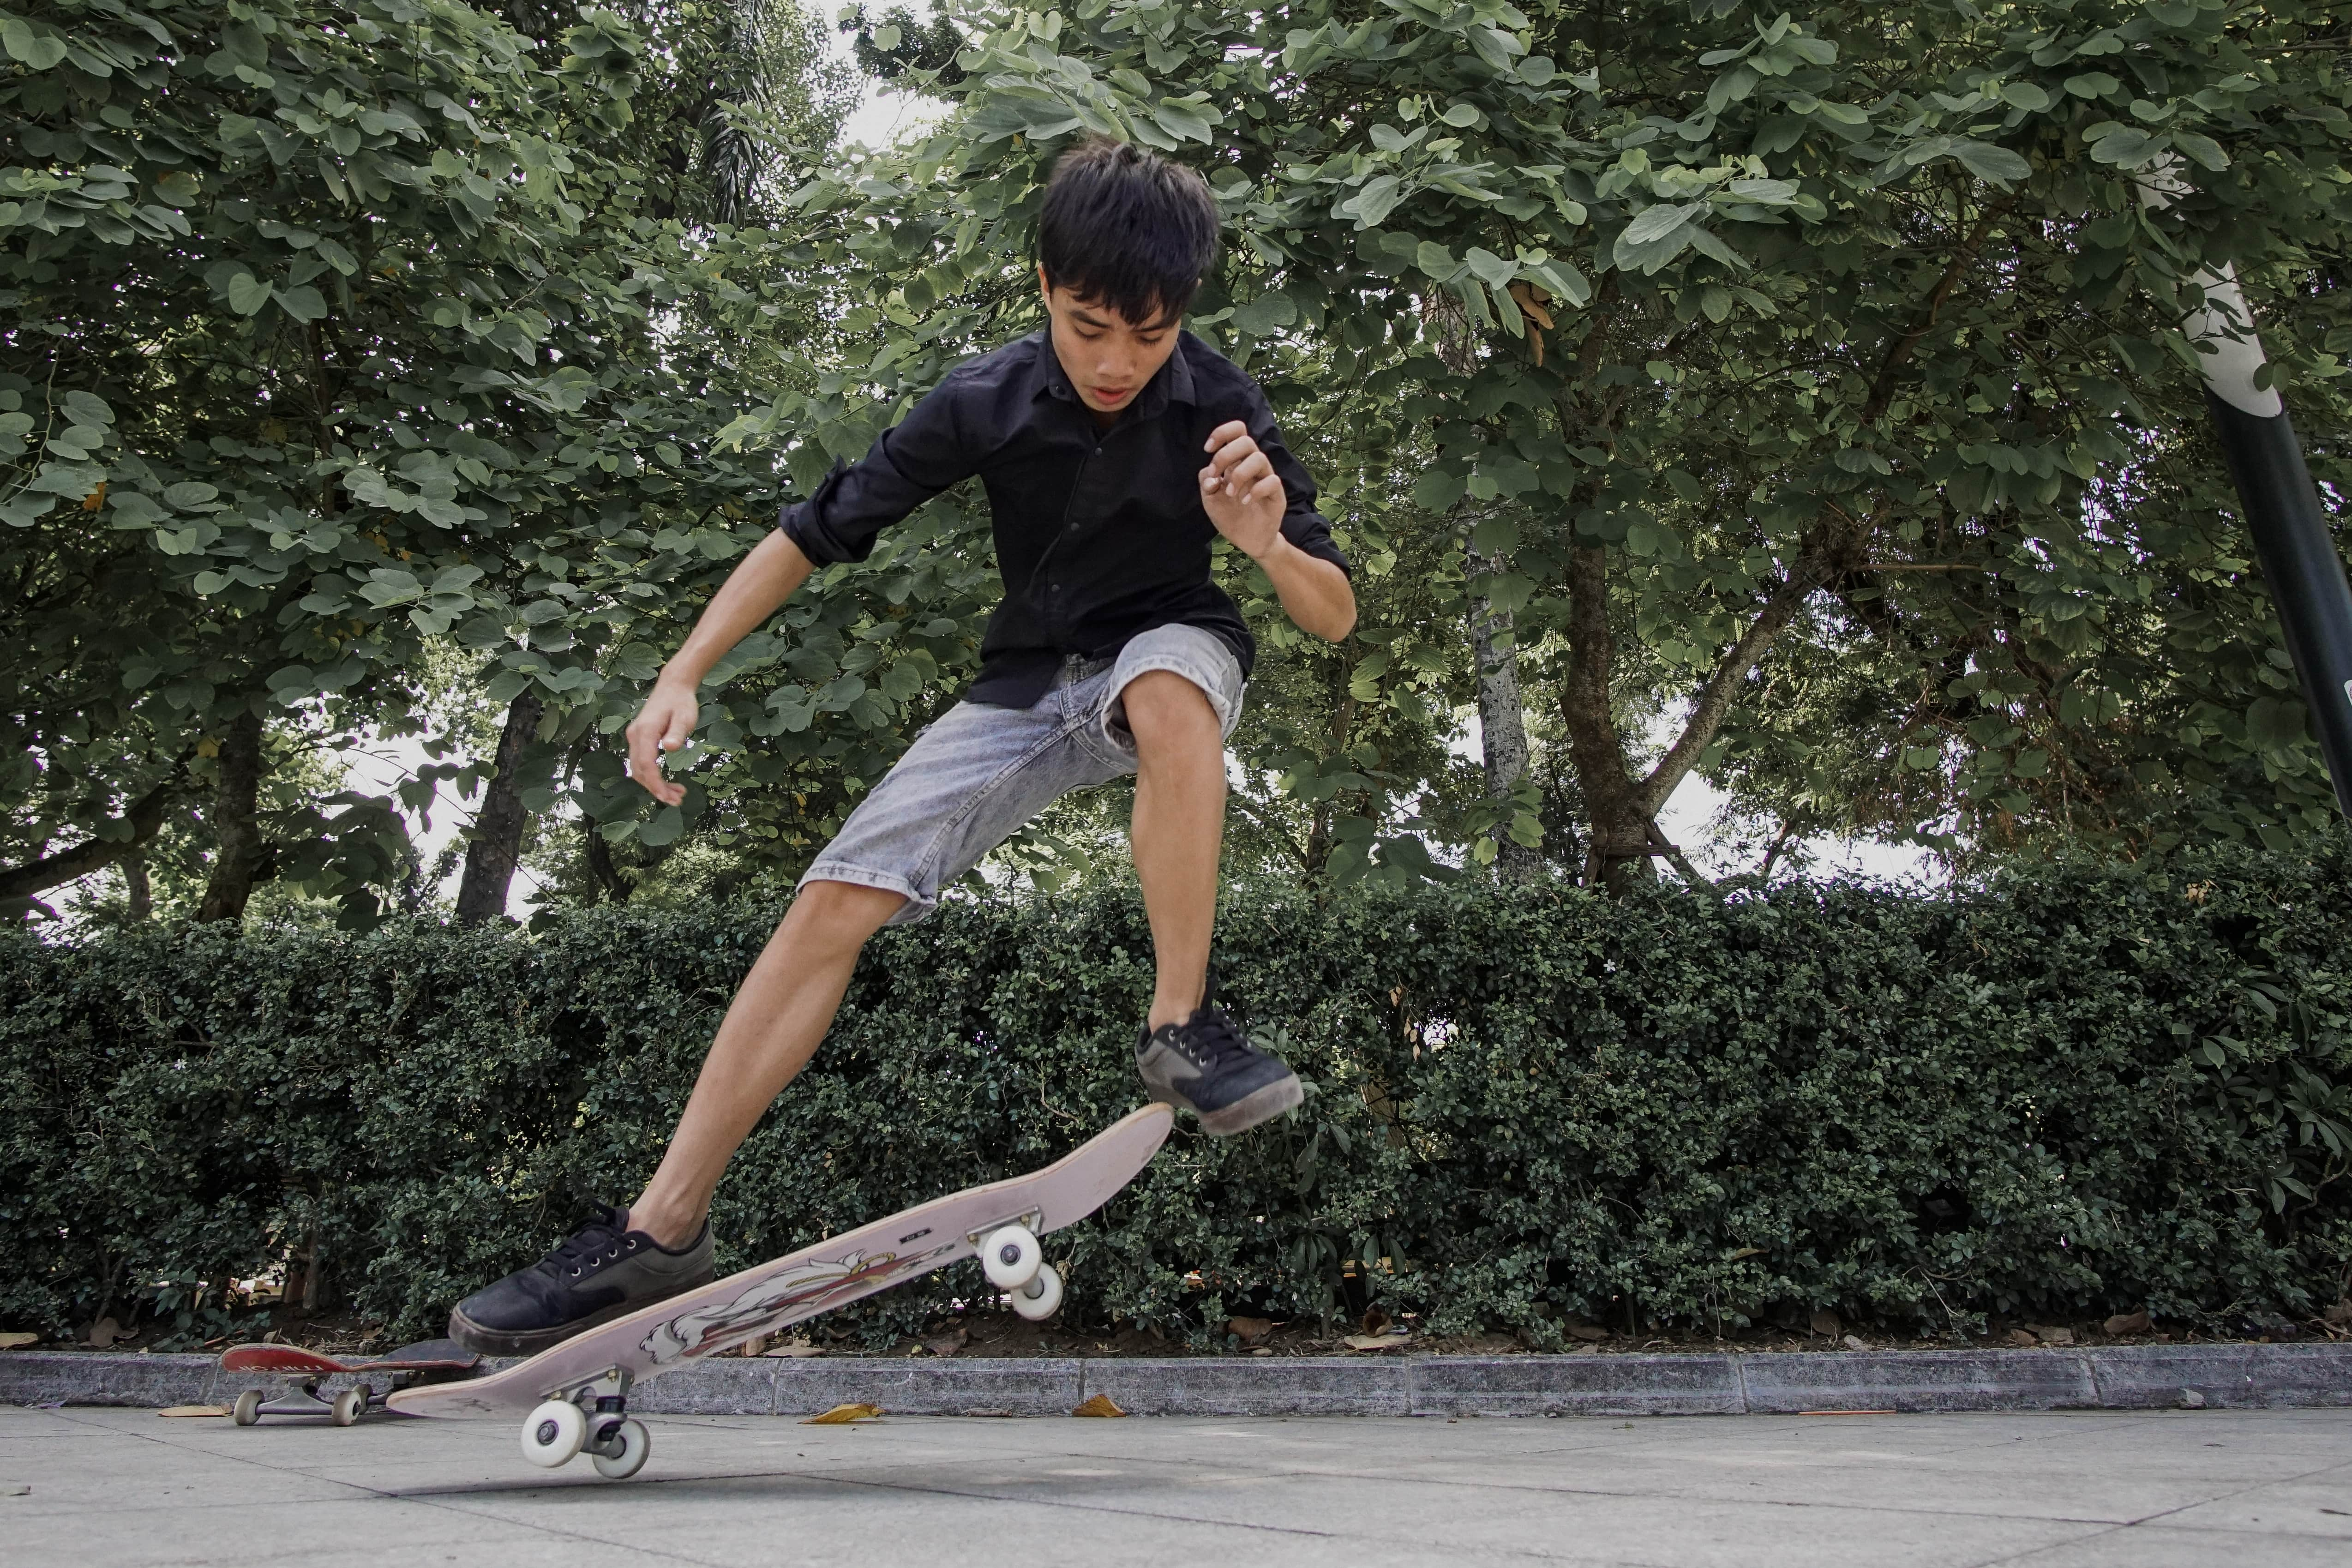 Blue Dragon-A child practicing skateboarding